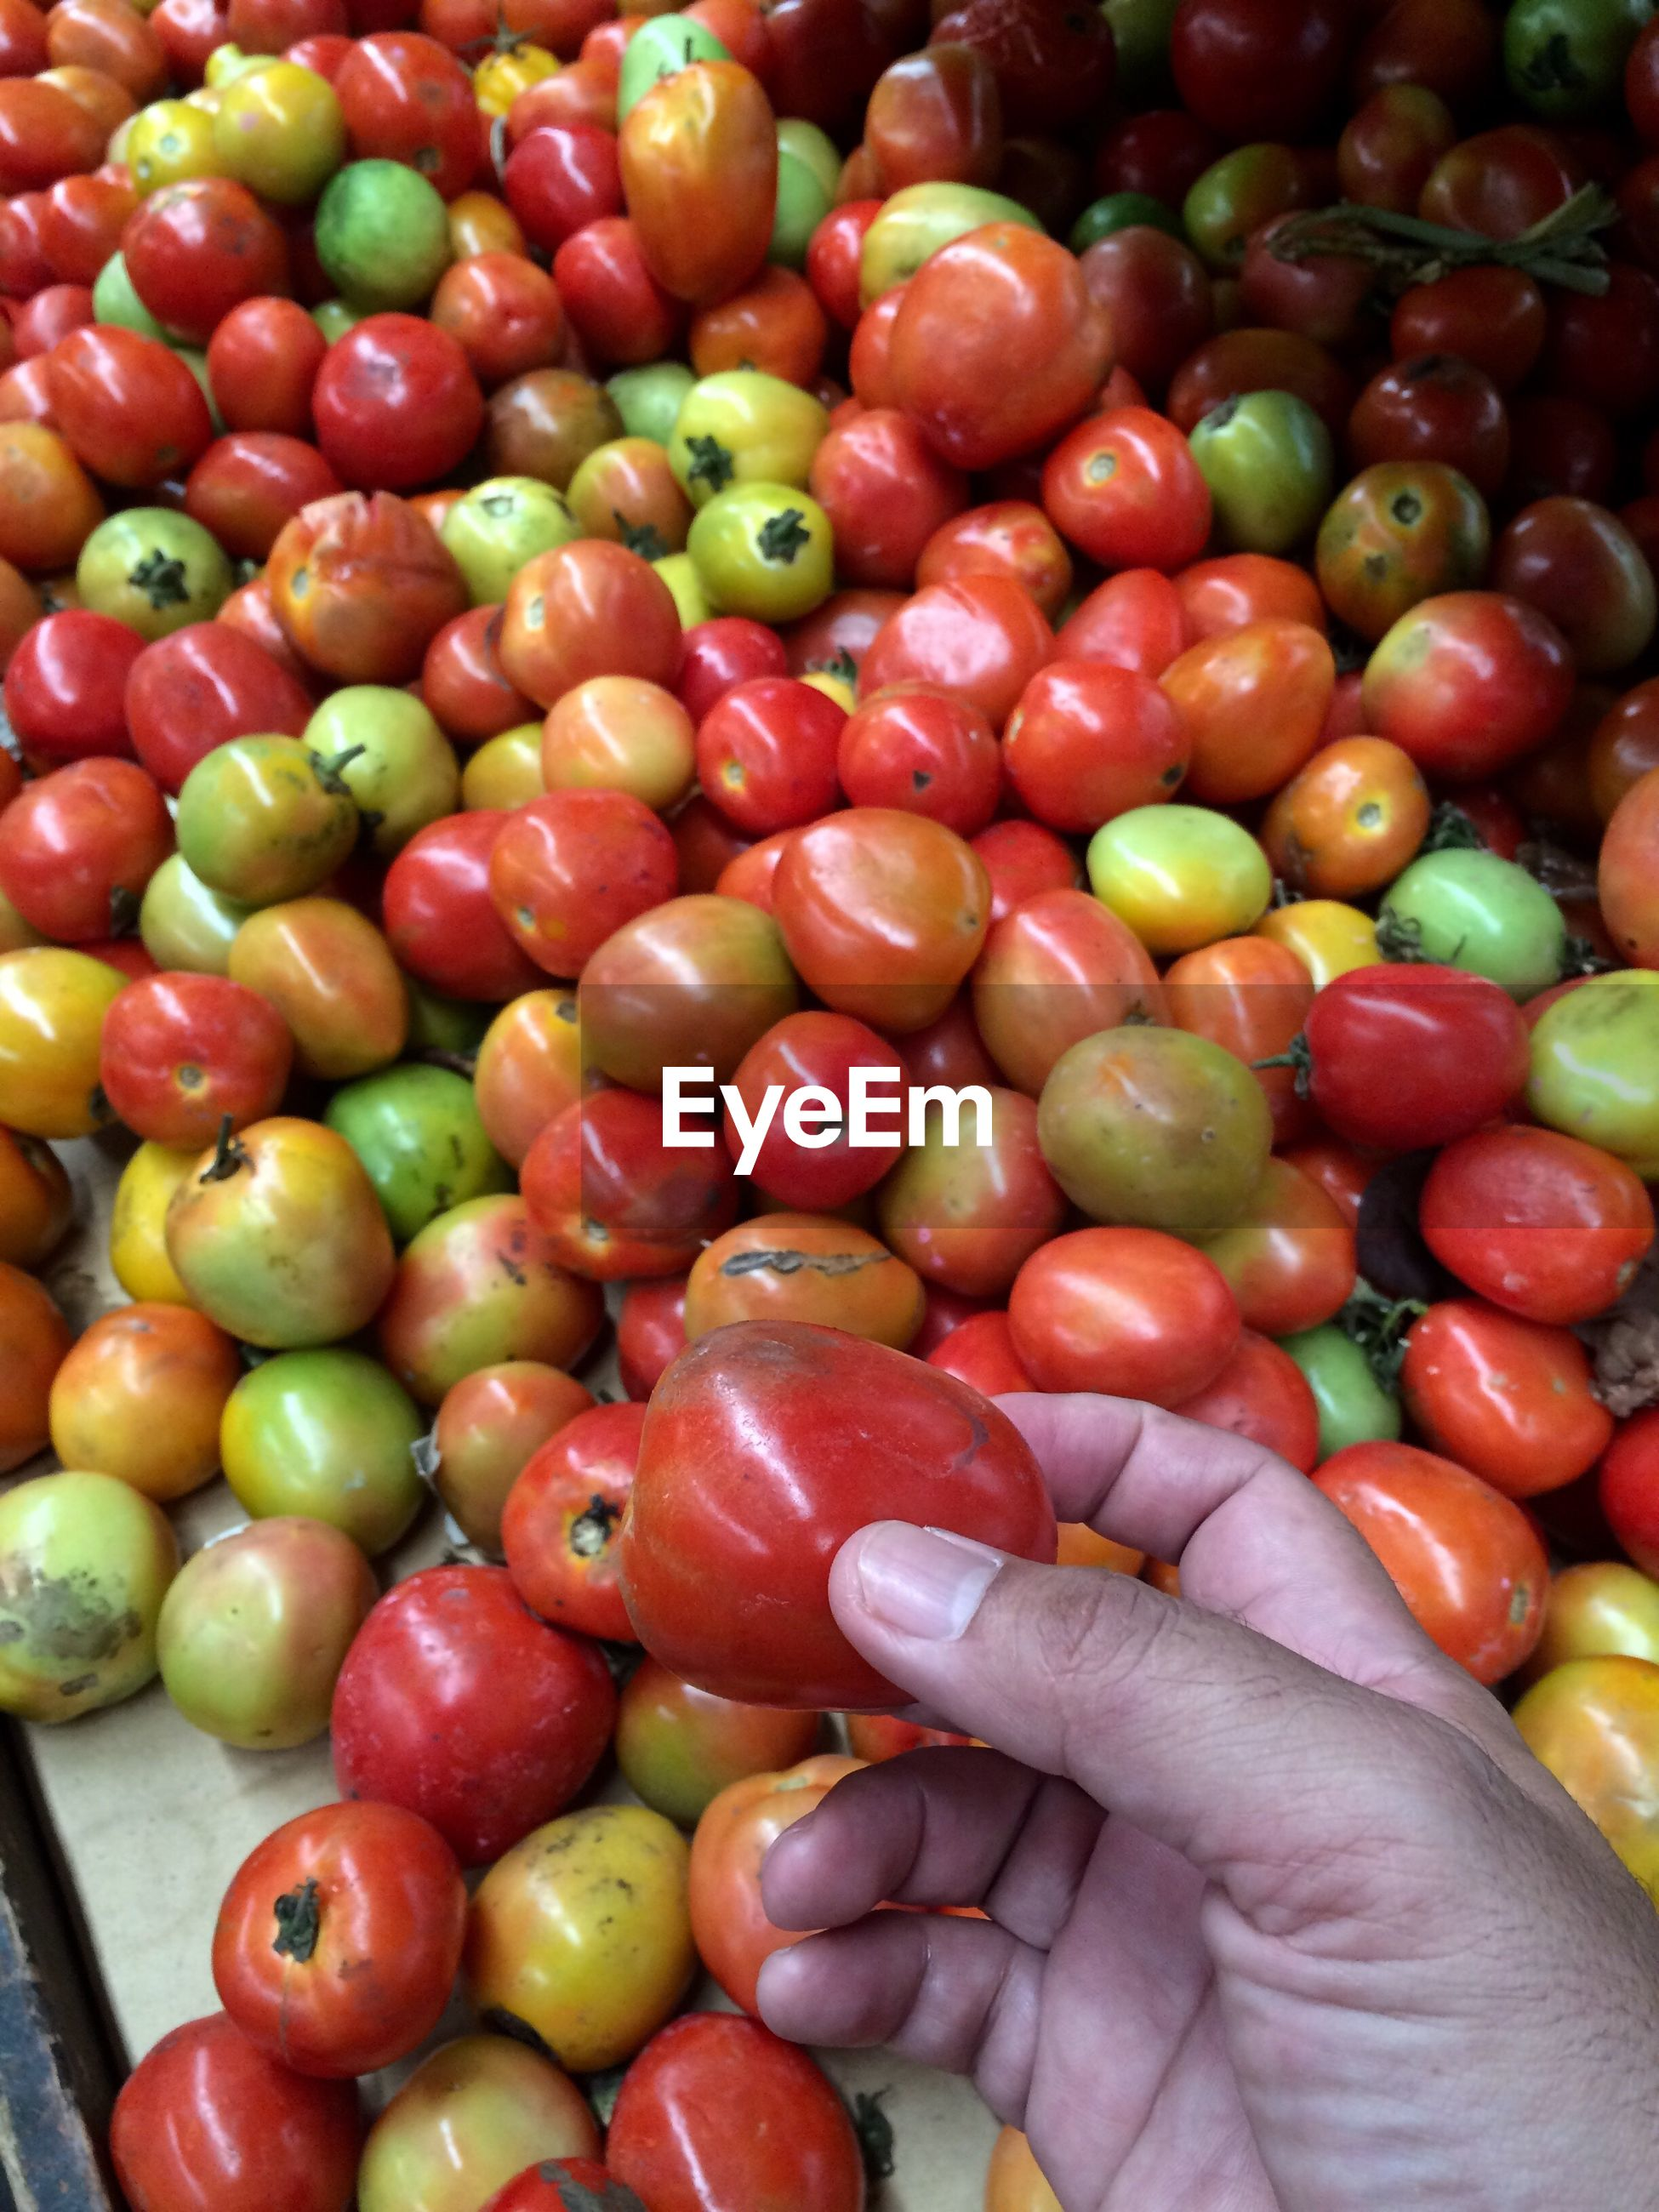 Cropped image of hand holding tomato at market stall